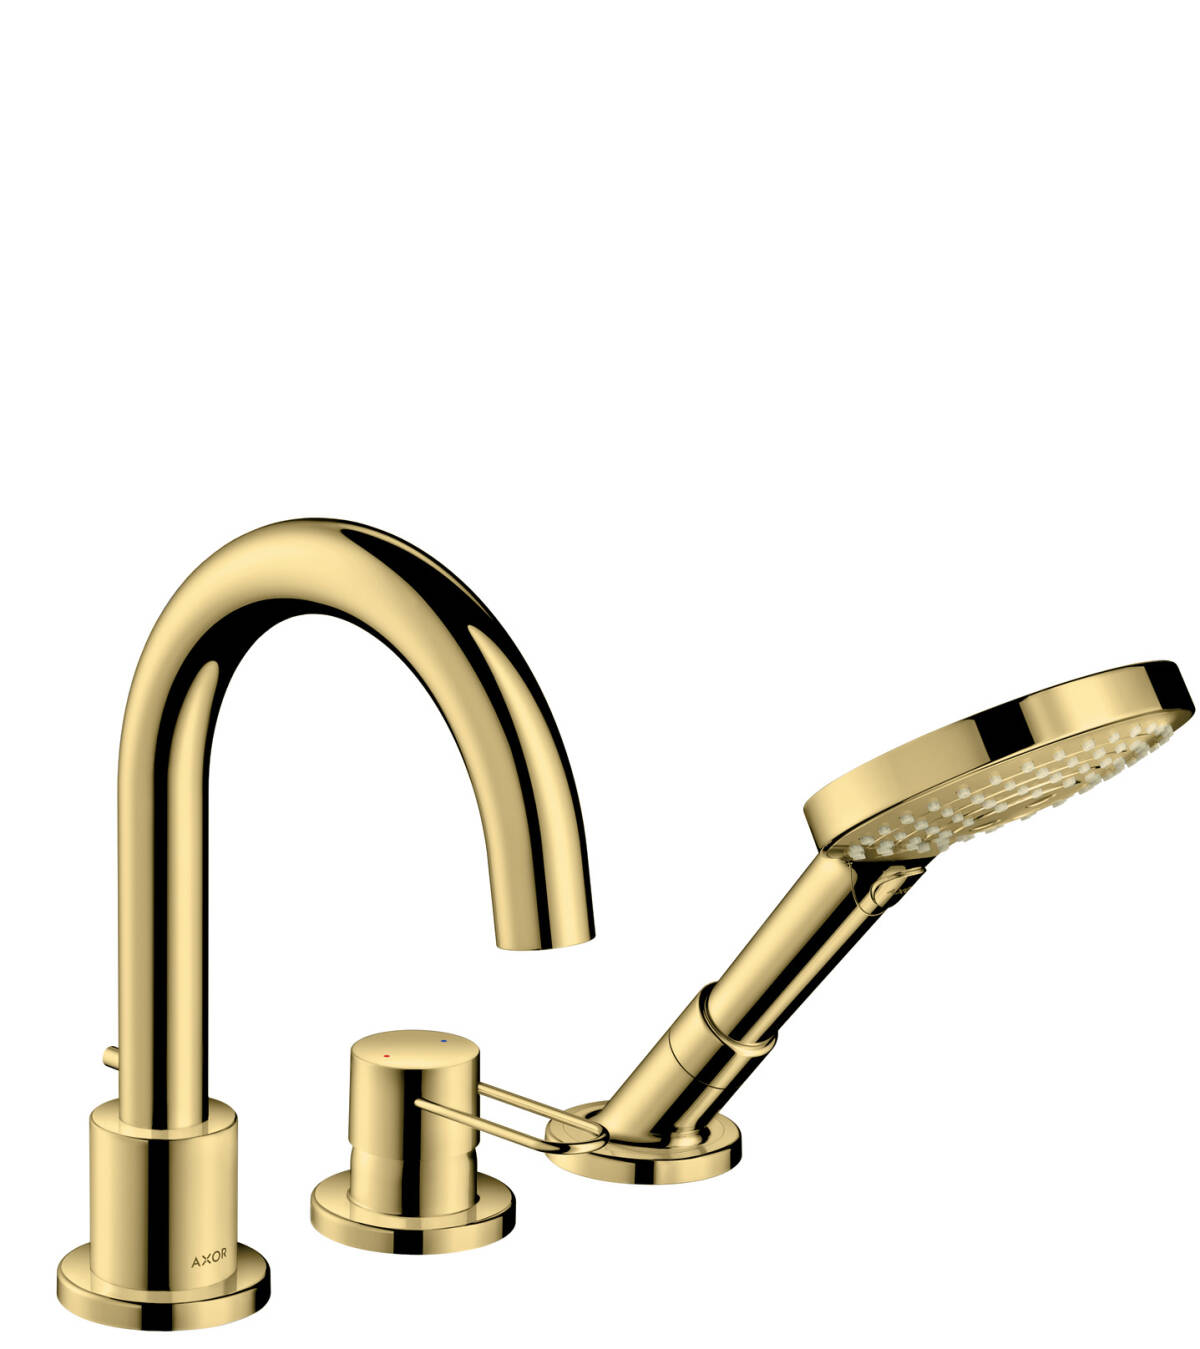 3-hole rim mounted bath mixer with loop handle, Polished Brass, 38436930